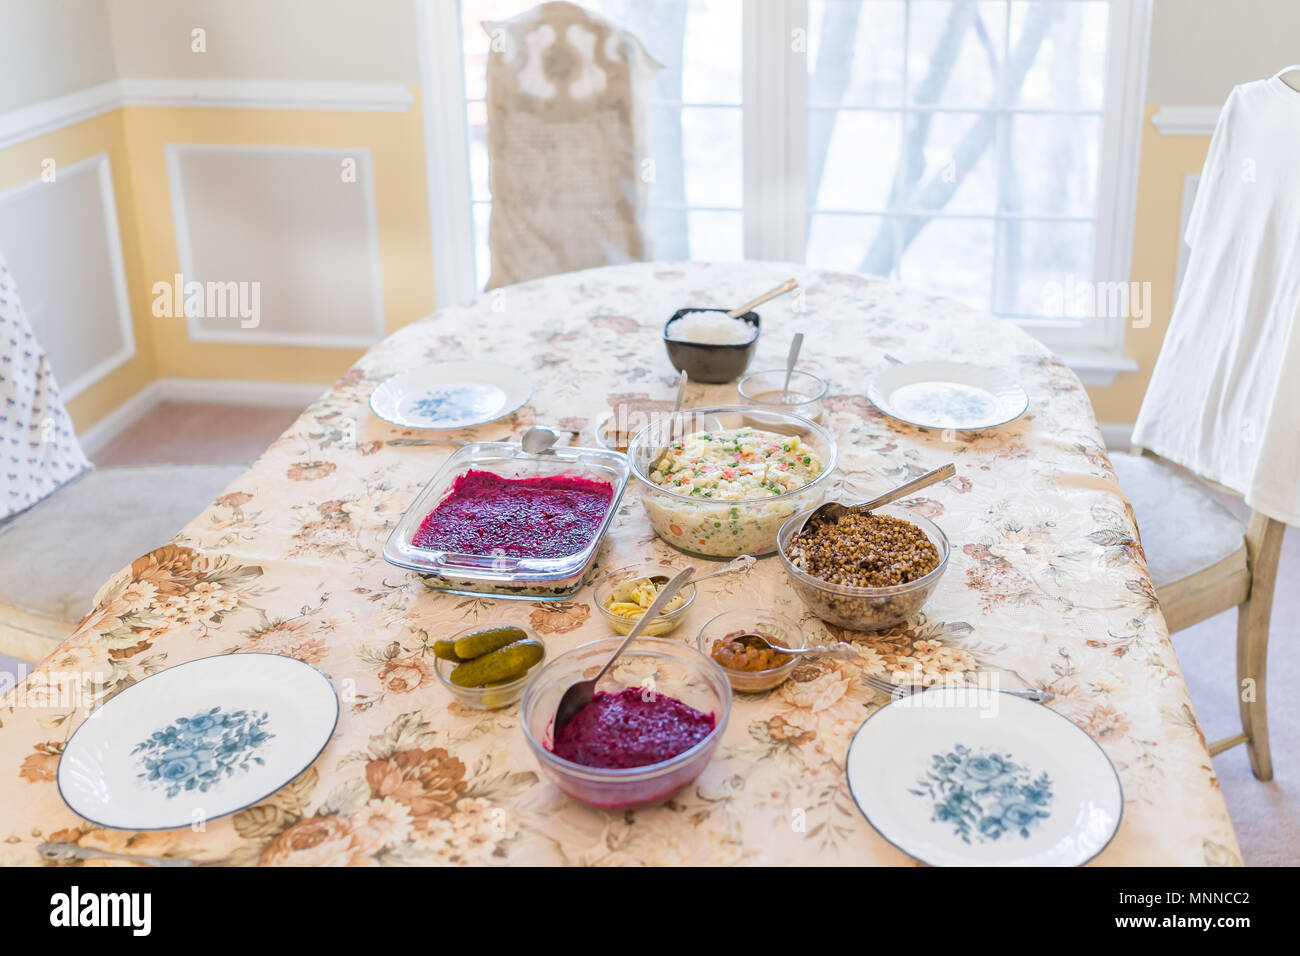 Simple traditional Slavic Russian Ukrainian Orthodox Christmas Eve dinner supper with 12 dishes, celebrated on January 7th, such as Kutia, beet salads - Stock Image